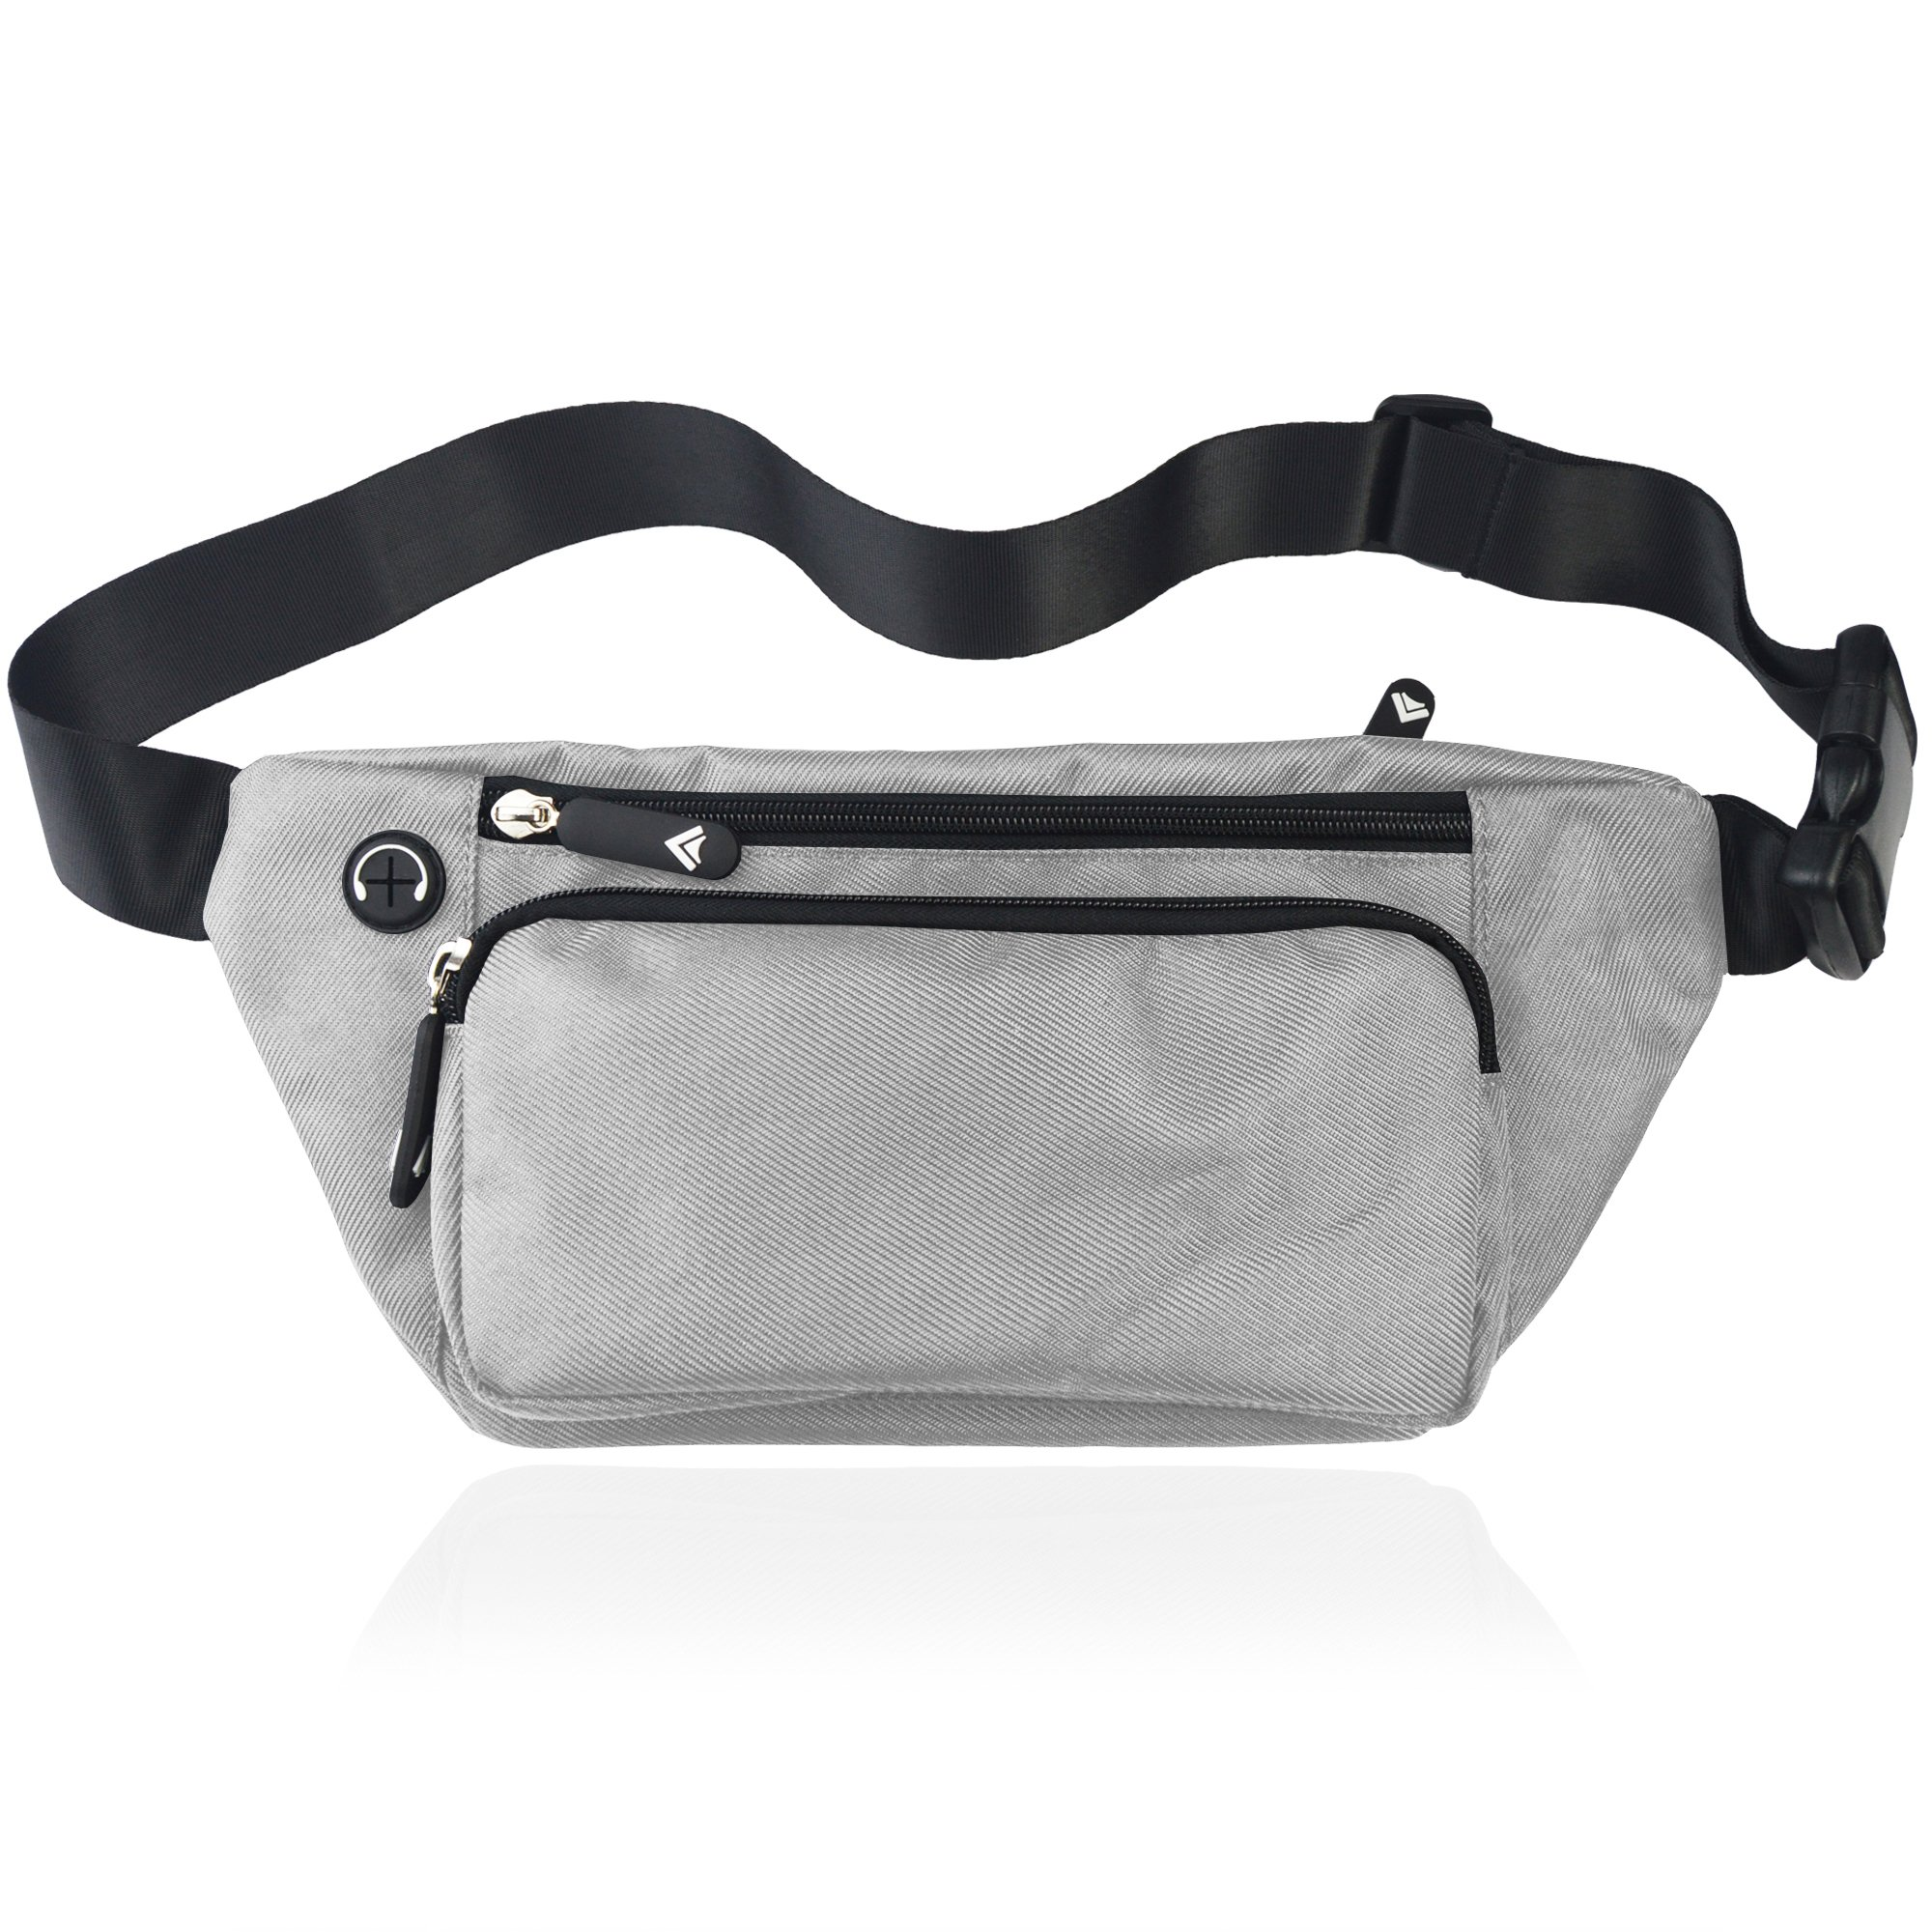 TIFRY Silver Fanny Pack Men Women Waist Pack Bag Quick Release Buckle Water Resistant